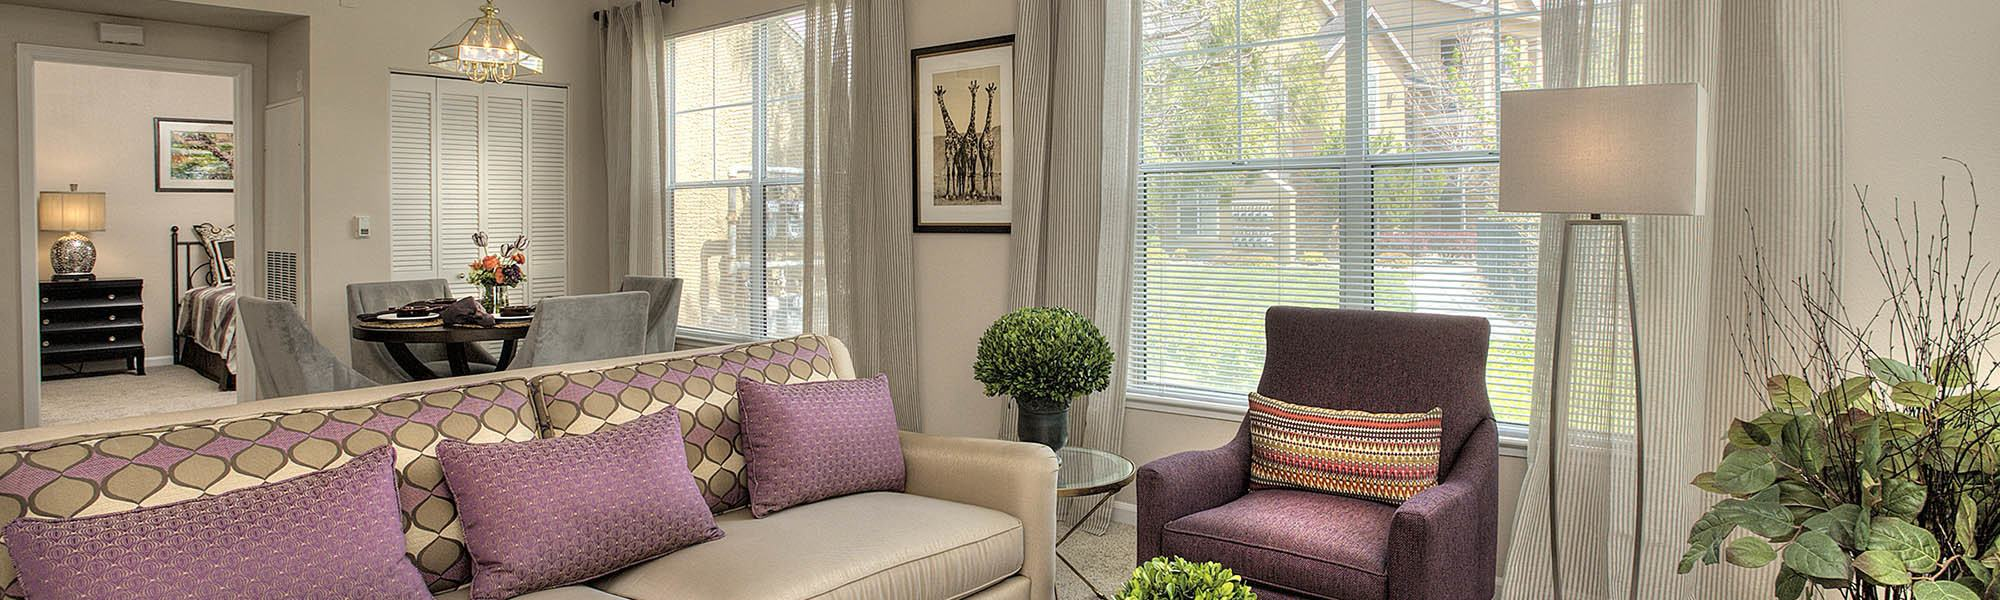 View our floor plans at The Vintage at South Meadows Condominium Rentals on our website